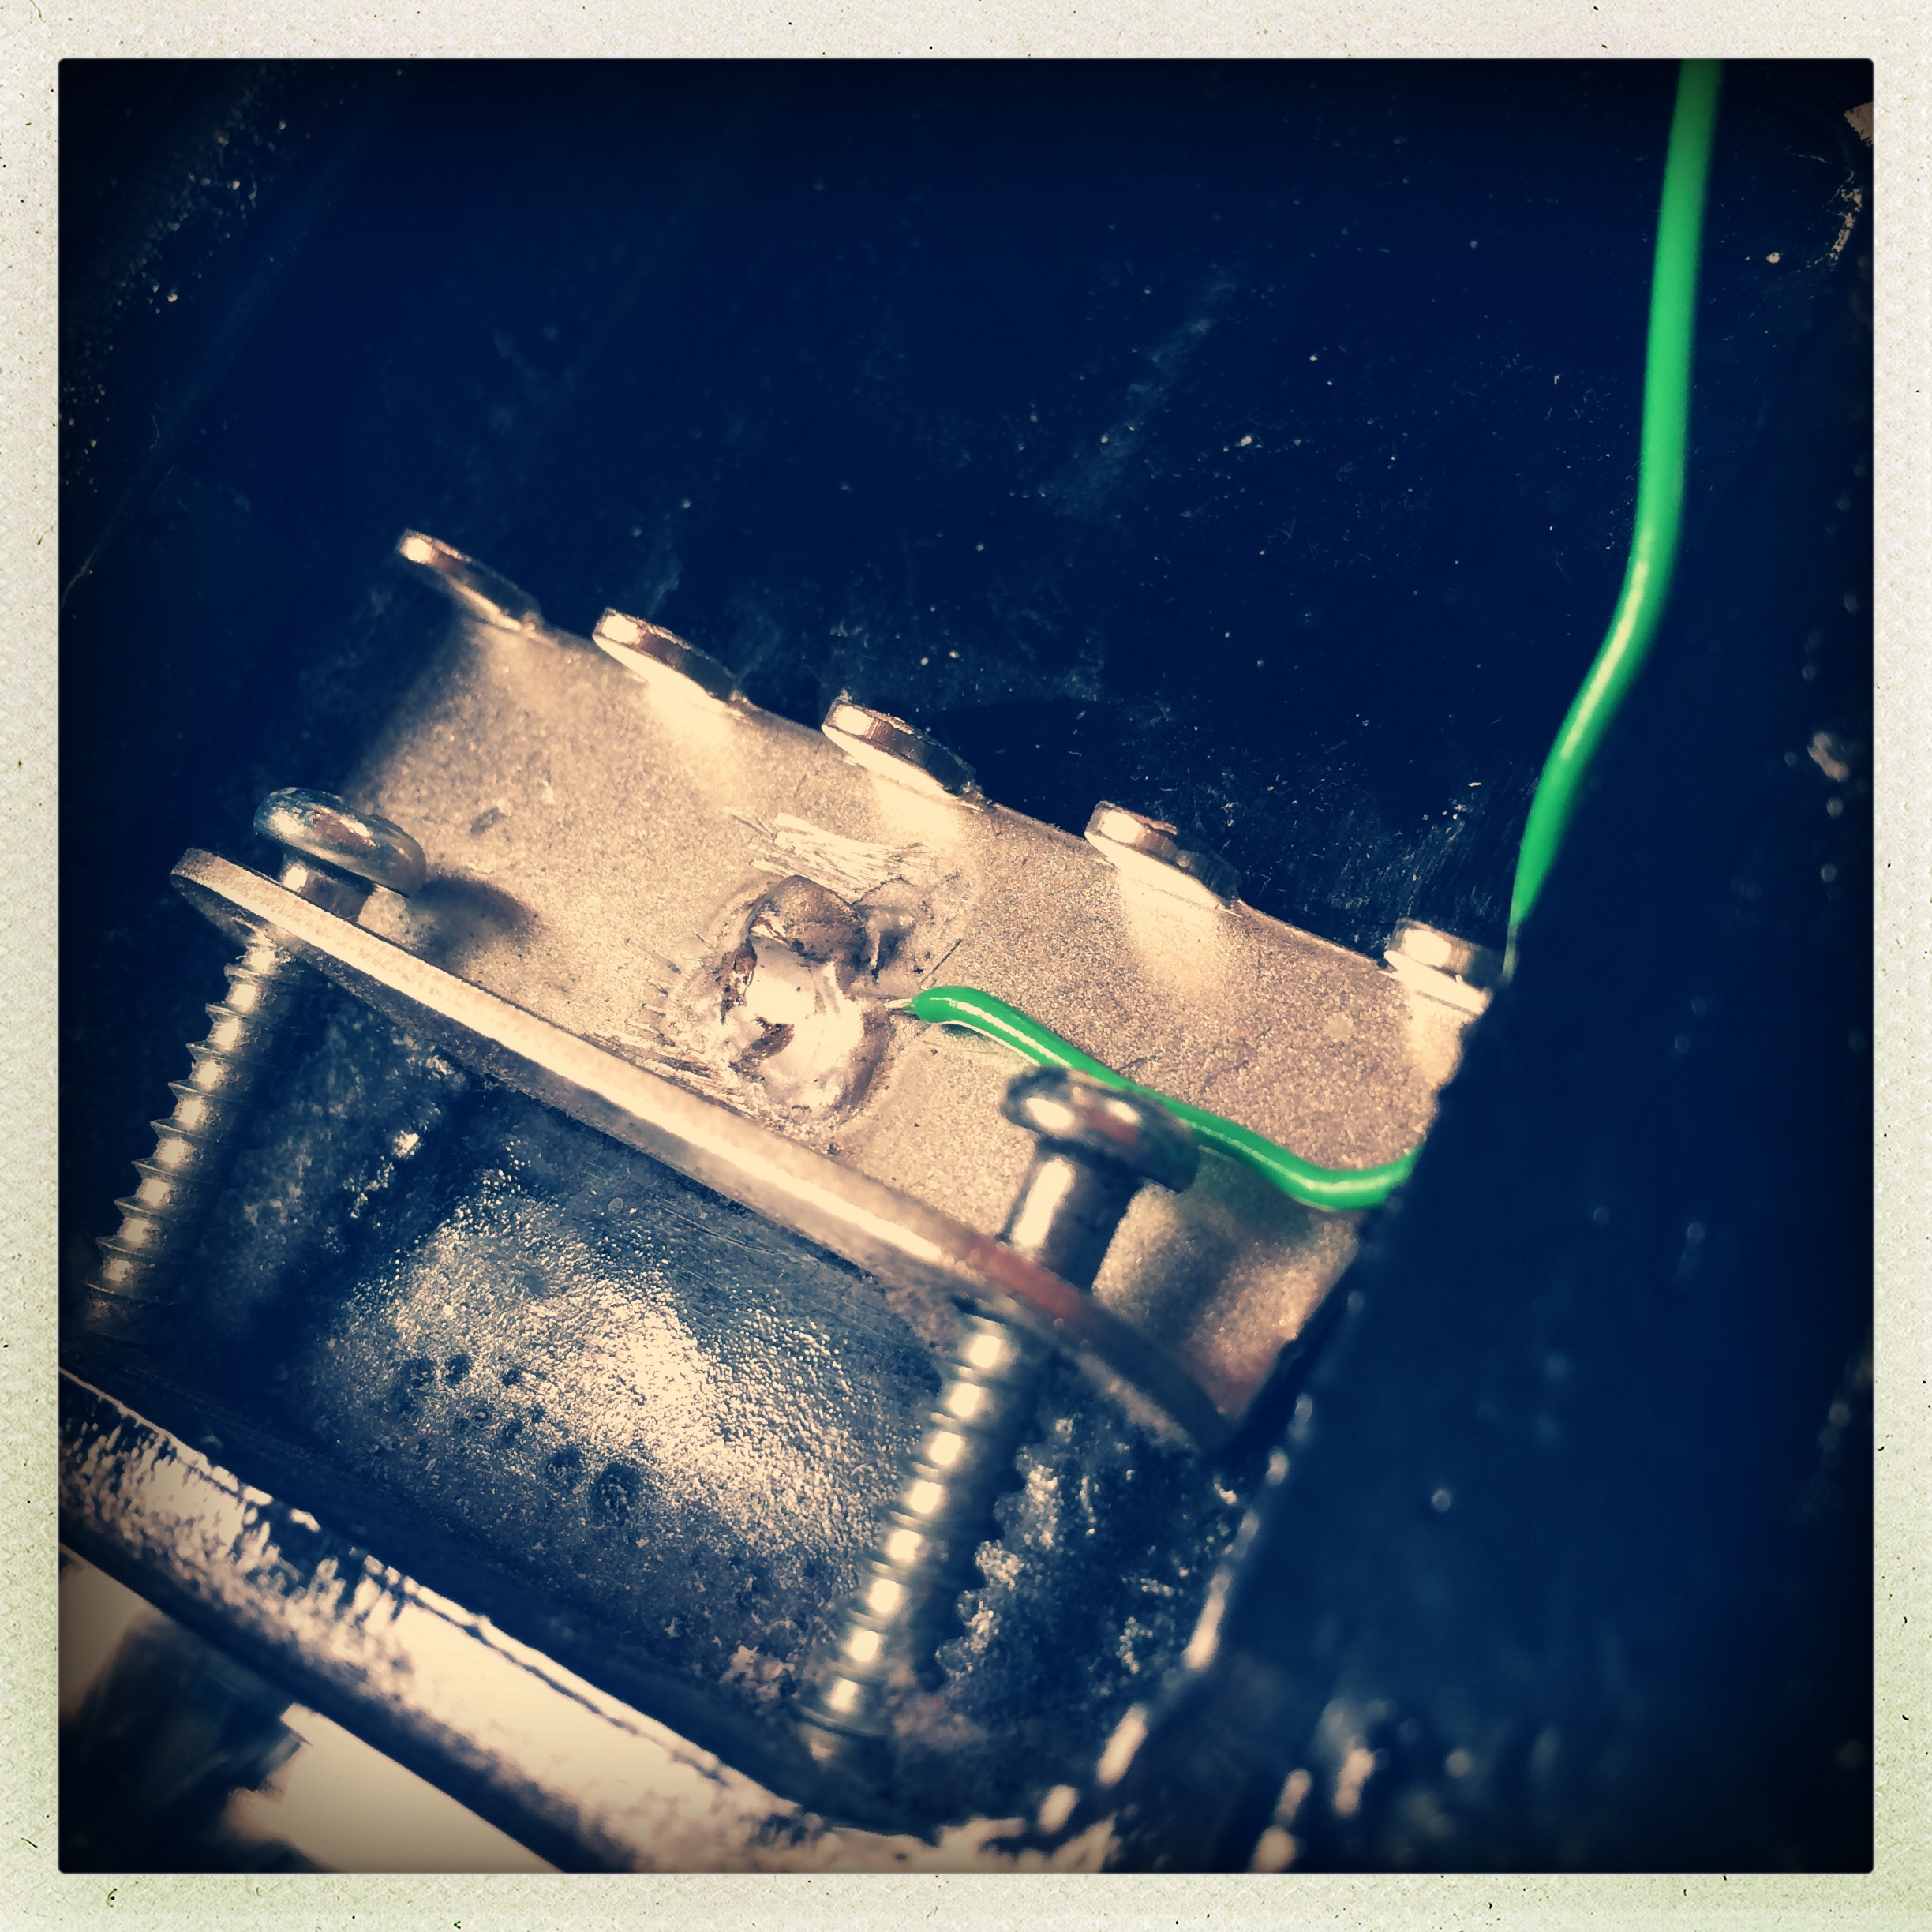 Soldering a wire to the tremolo claw is a more 'traditional' way to ground a Strat's strings